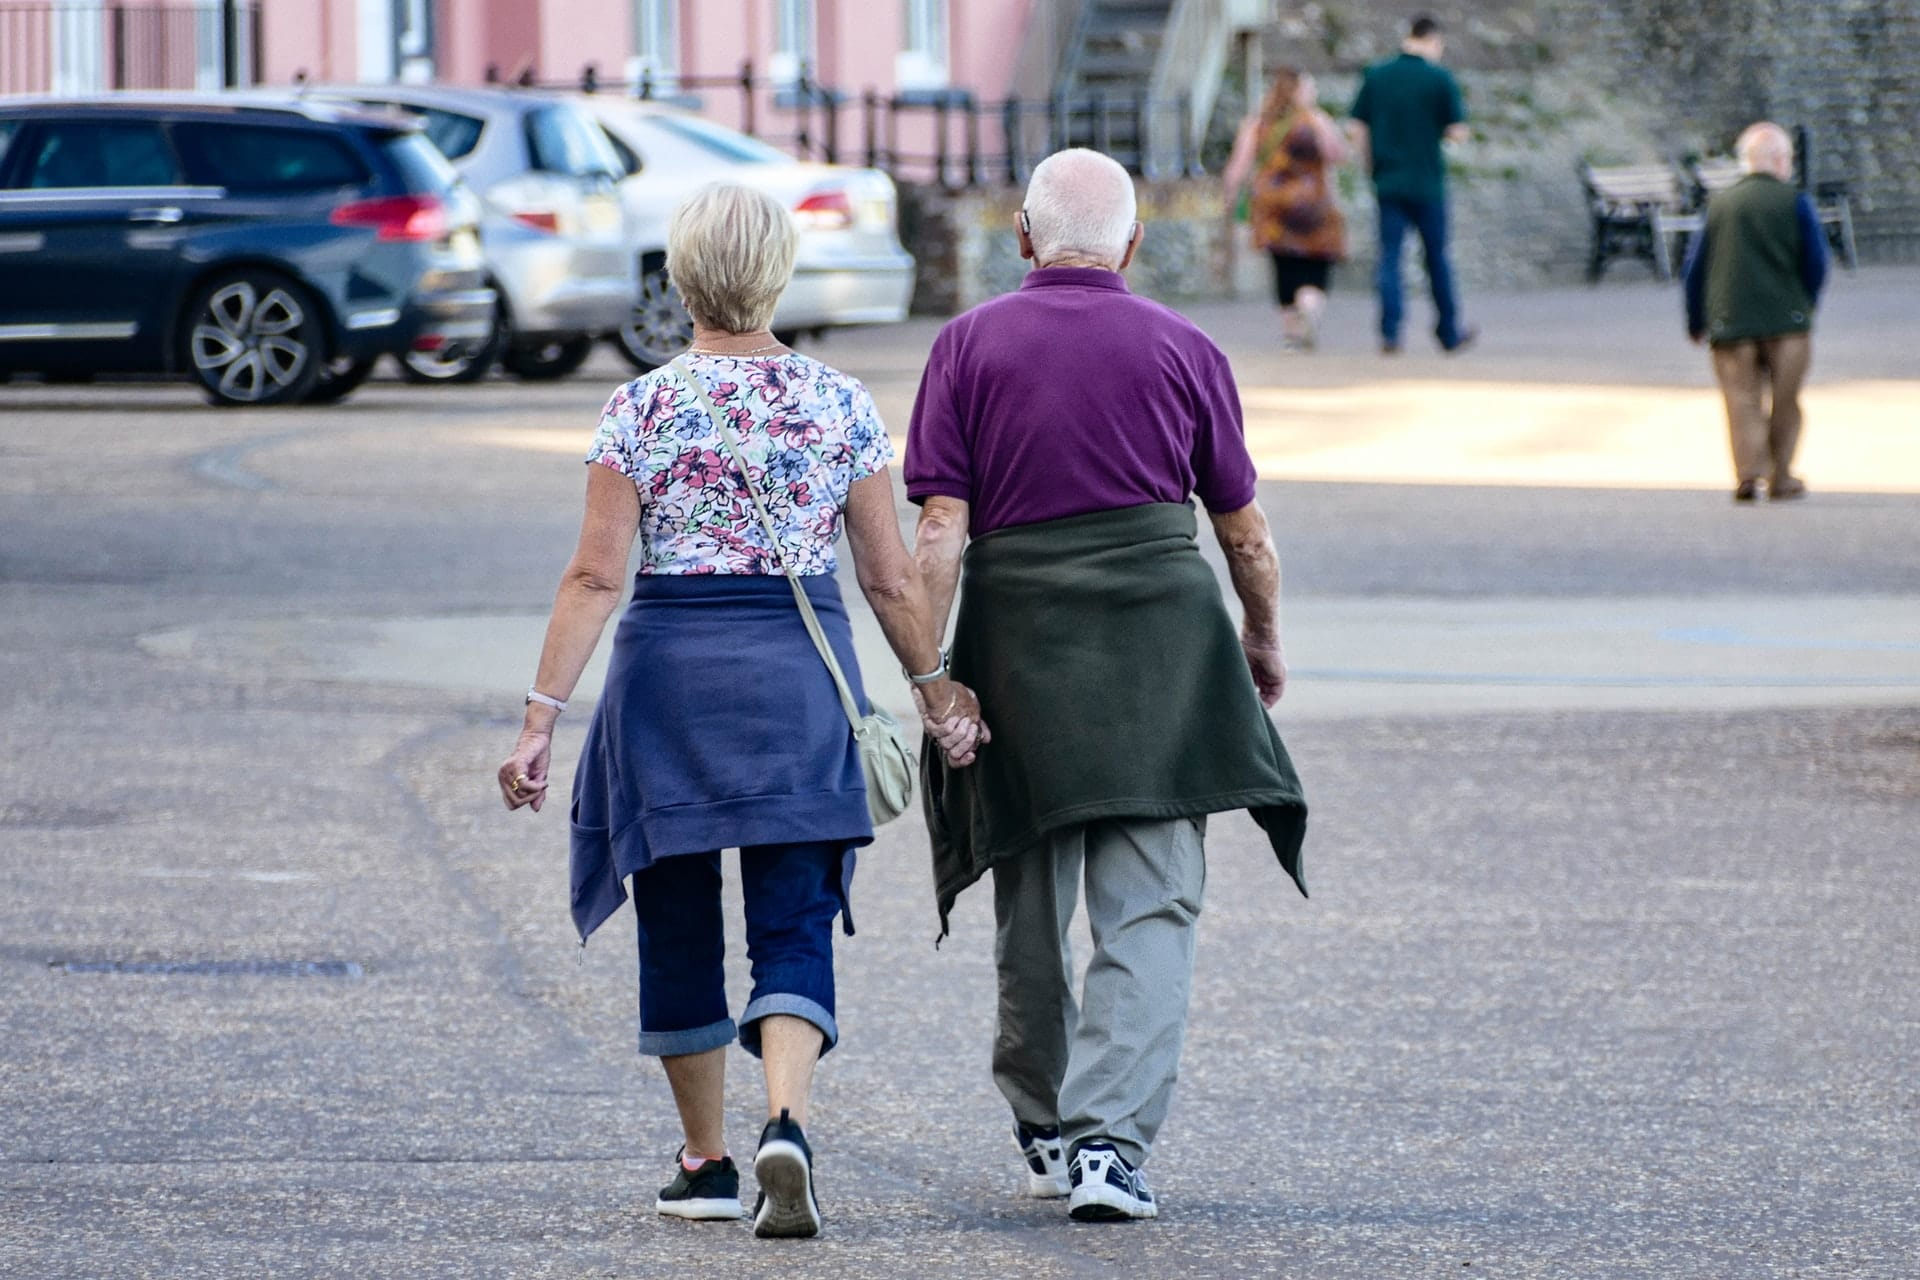 Finance News - Covid Pandemic Delays Retirement for Many Americans